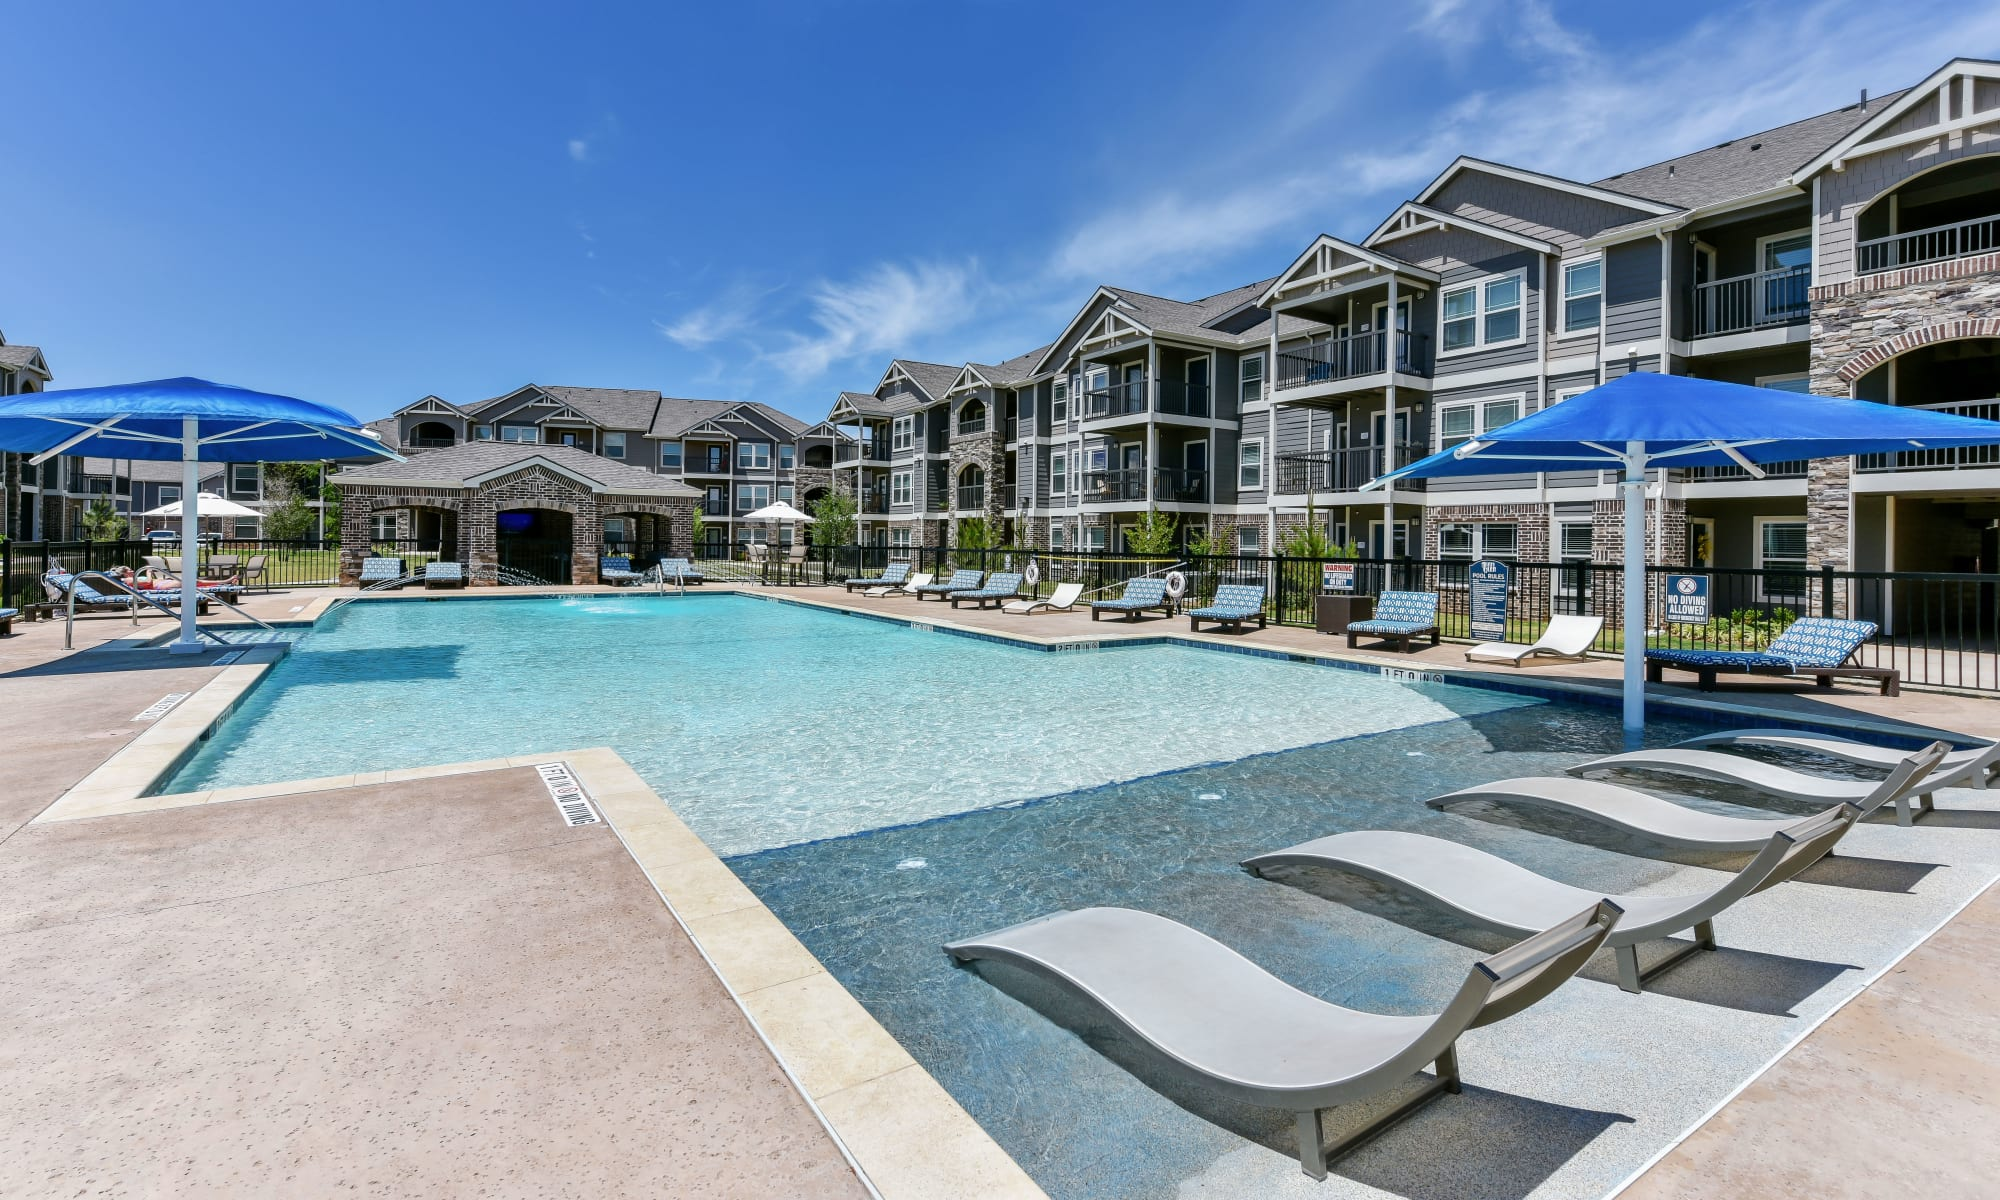 Cottages at Abbey Glen Apartments in Lubbock, Texas